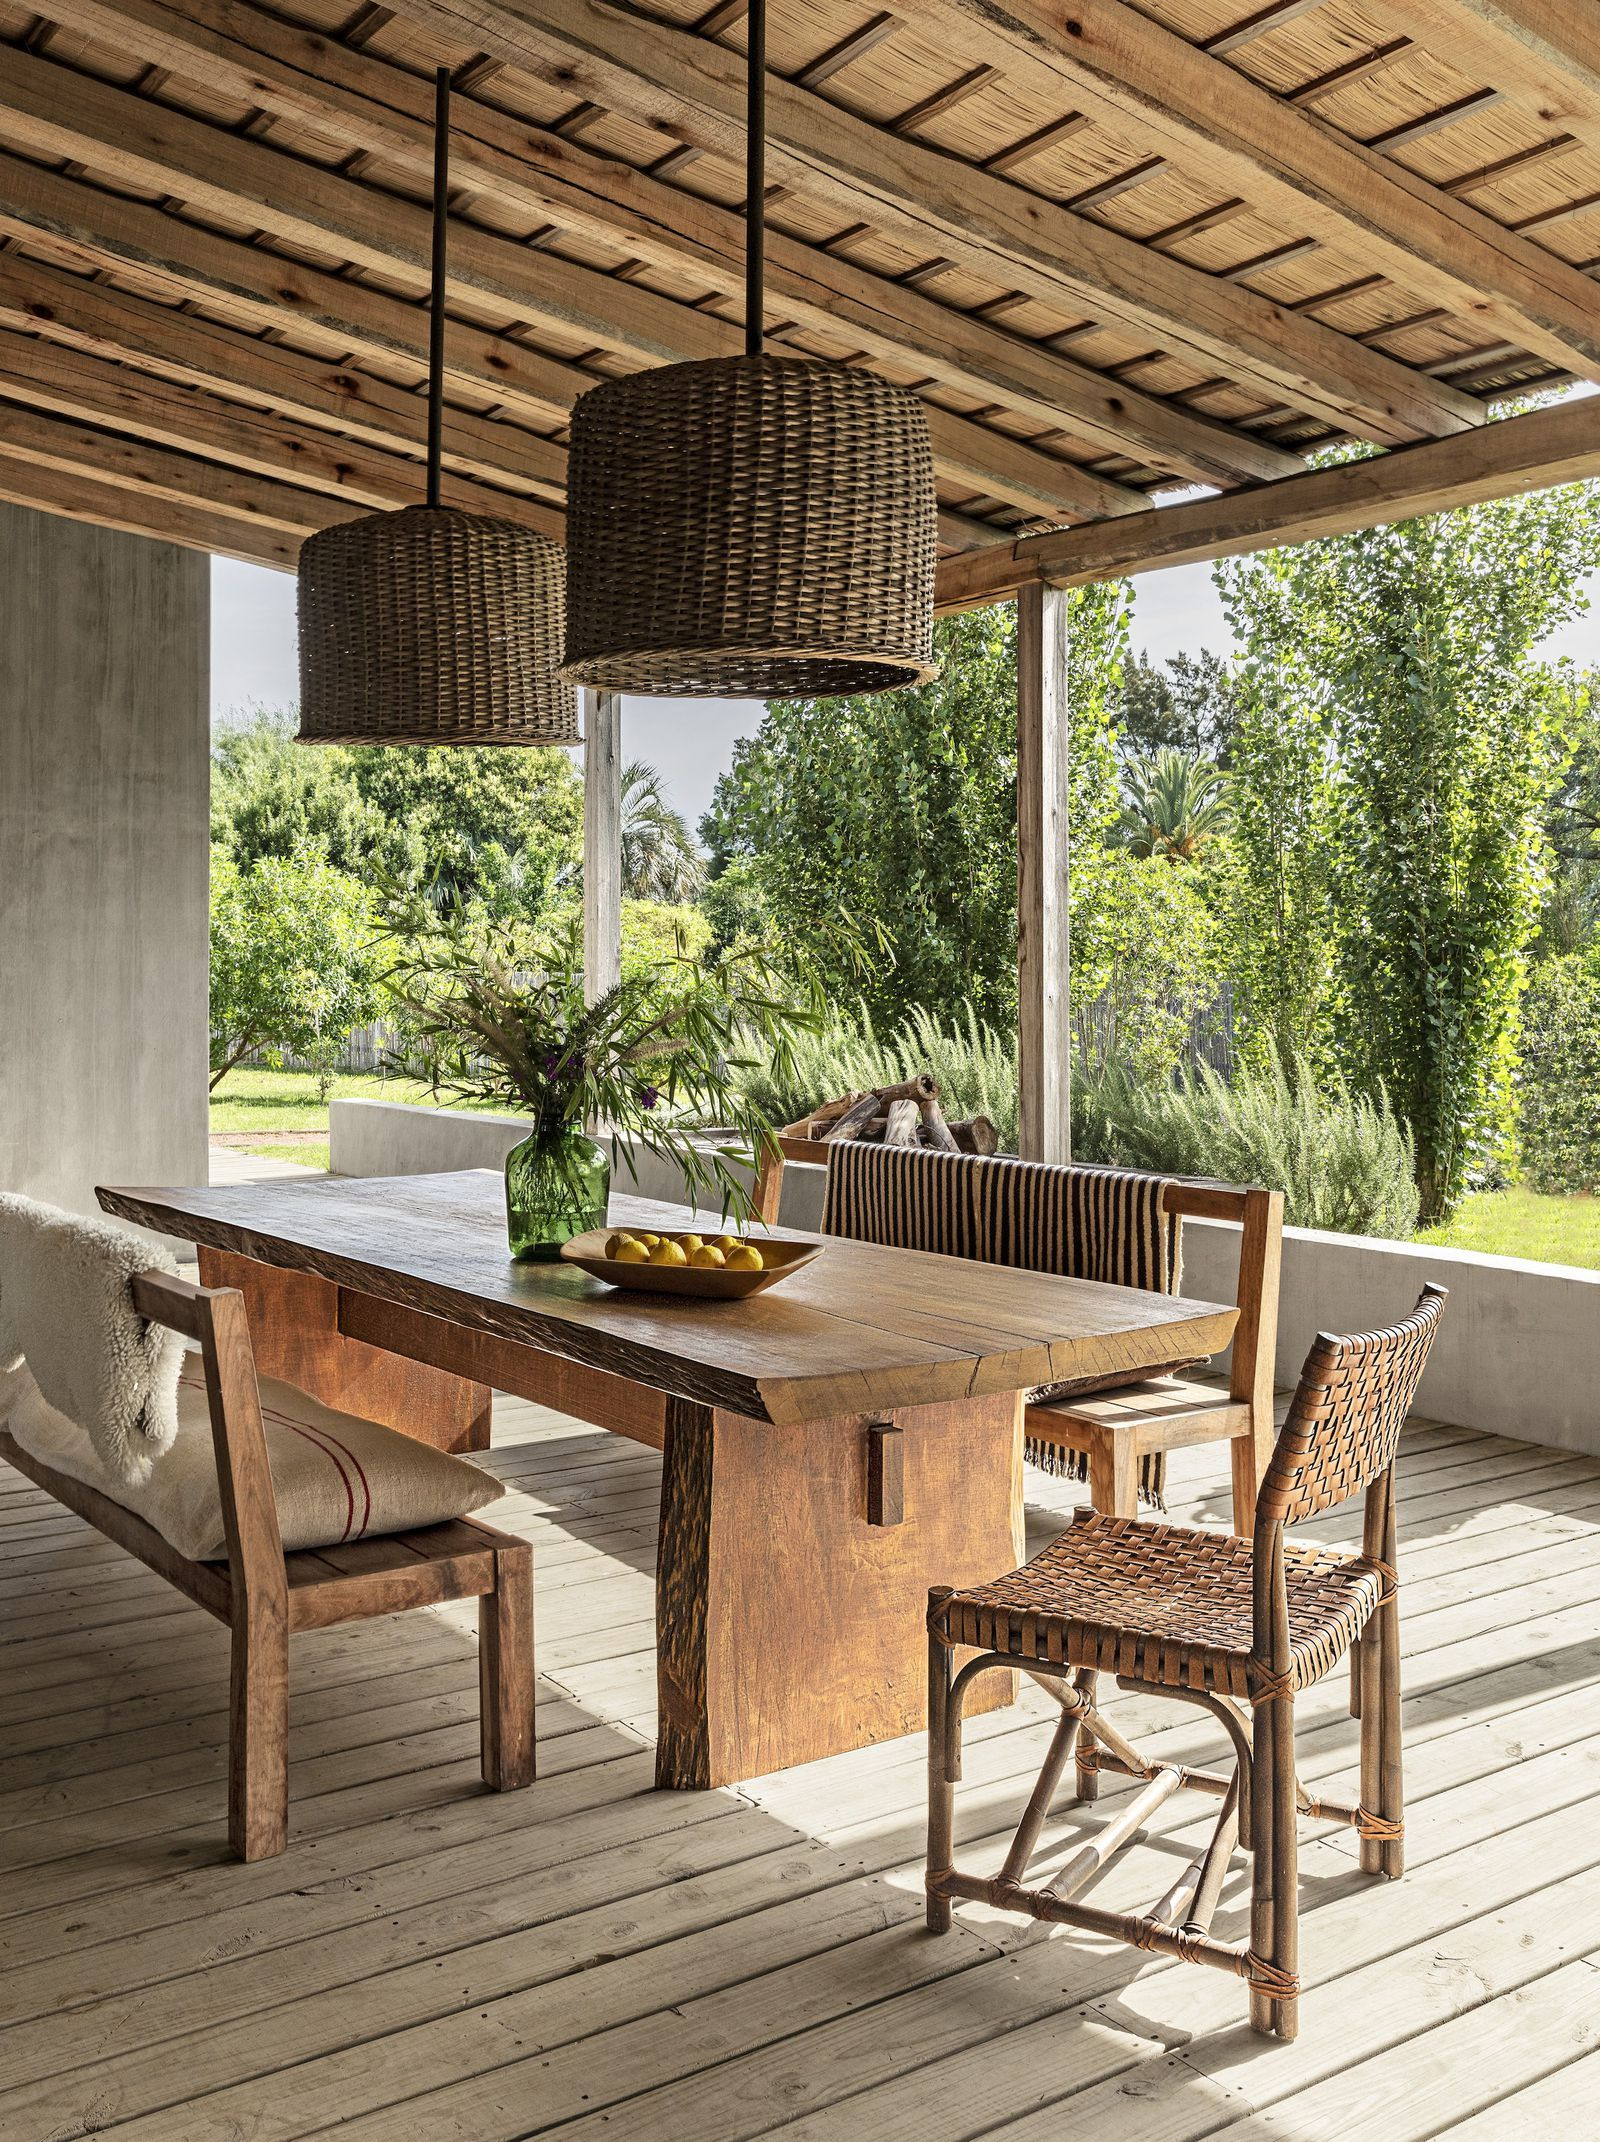 Gartenstühle Micasa A Look Inside A Stunning Rustic And Modern Home In Uruguay